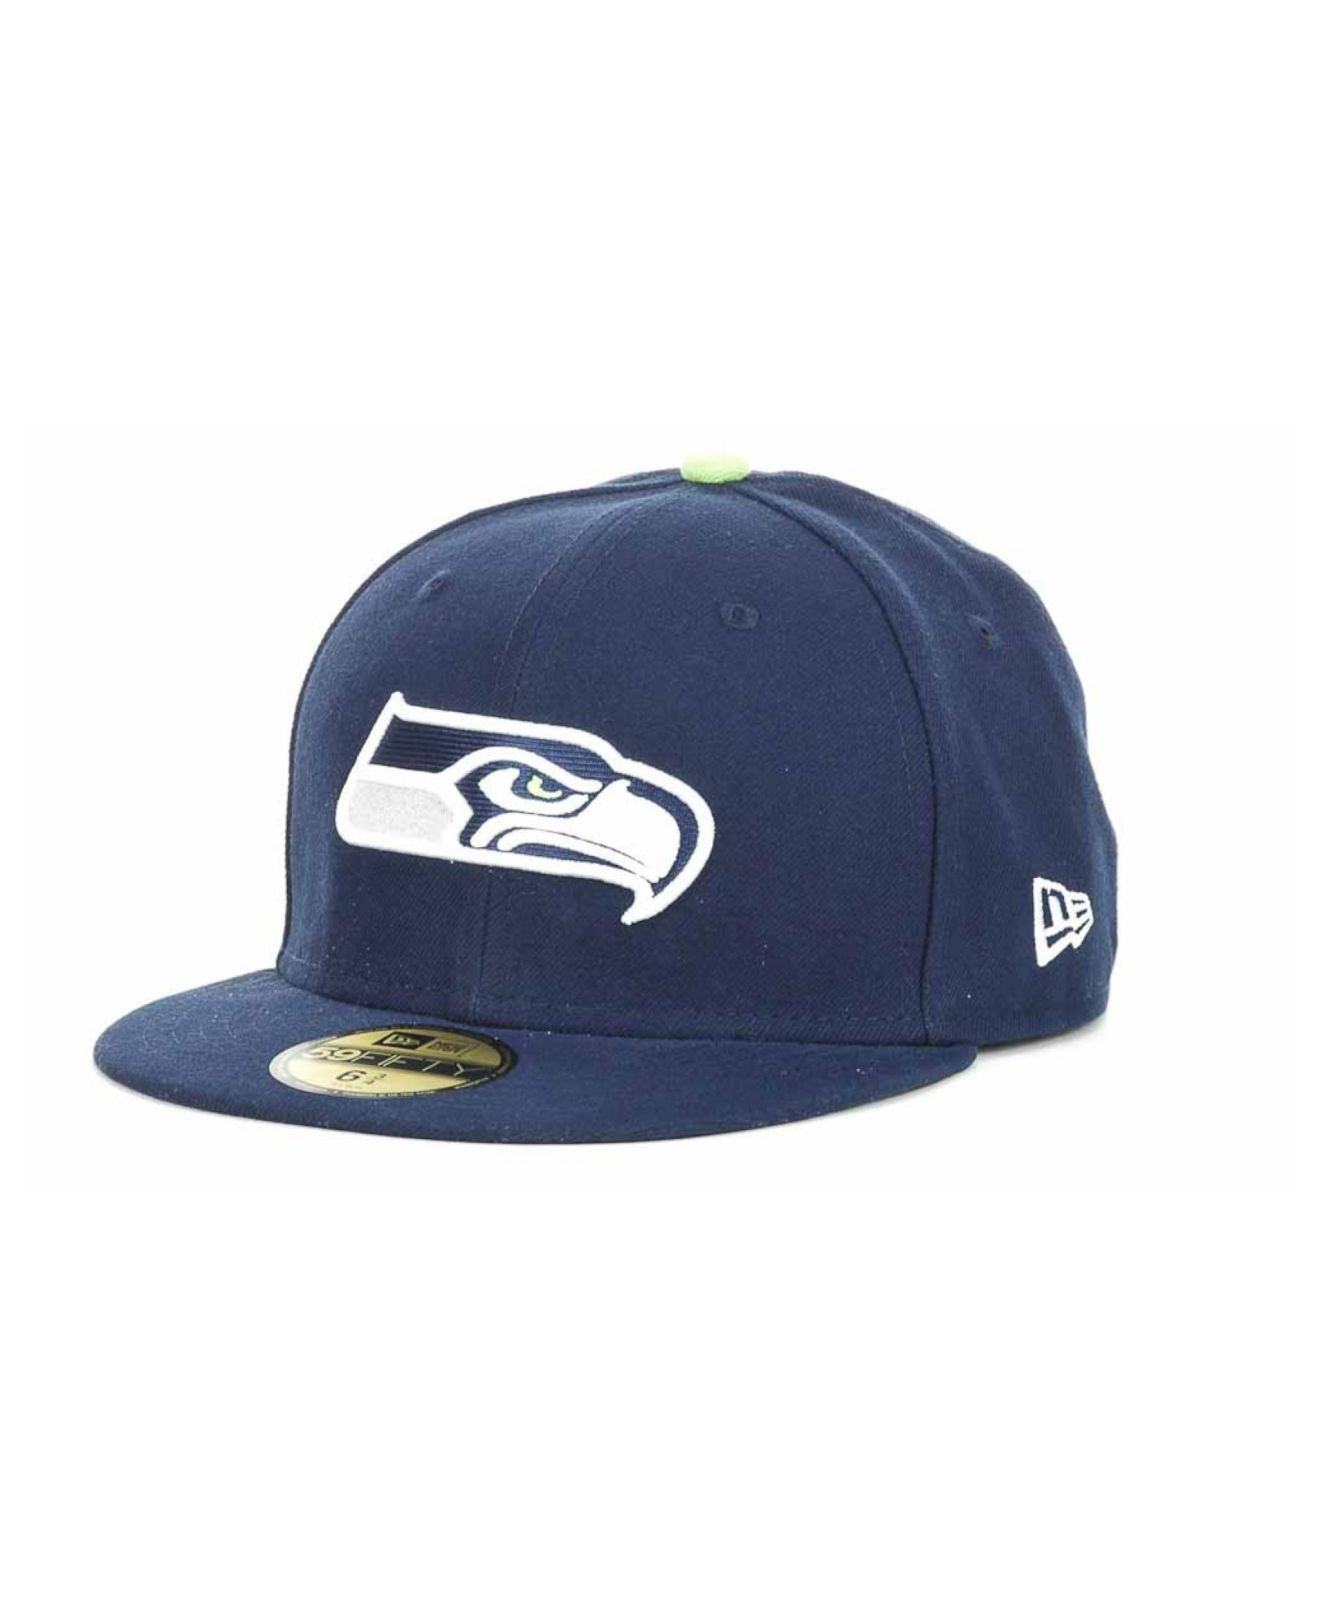 new era seattle seahawks nfl official on field 59fifty cap. Black Bedroom Furniture Sets. Home Design Ideas